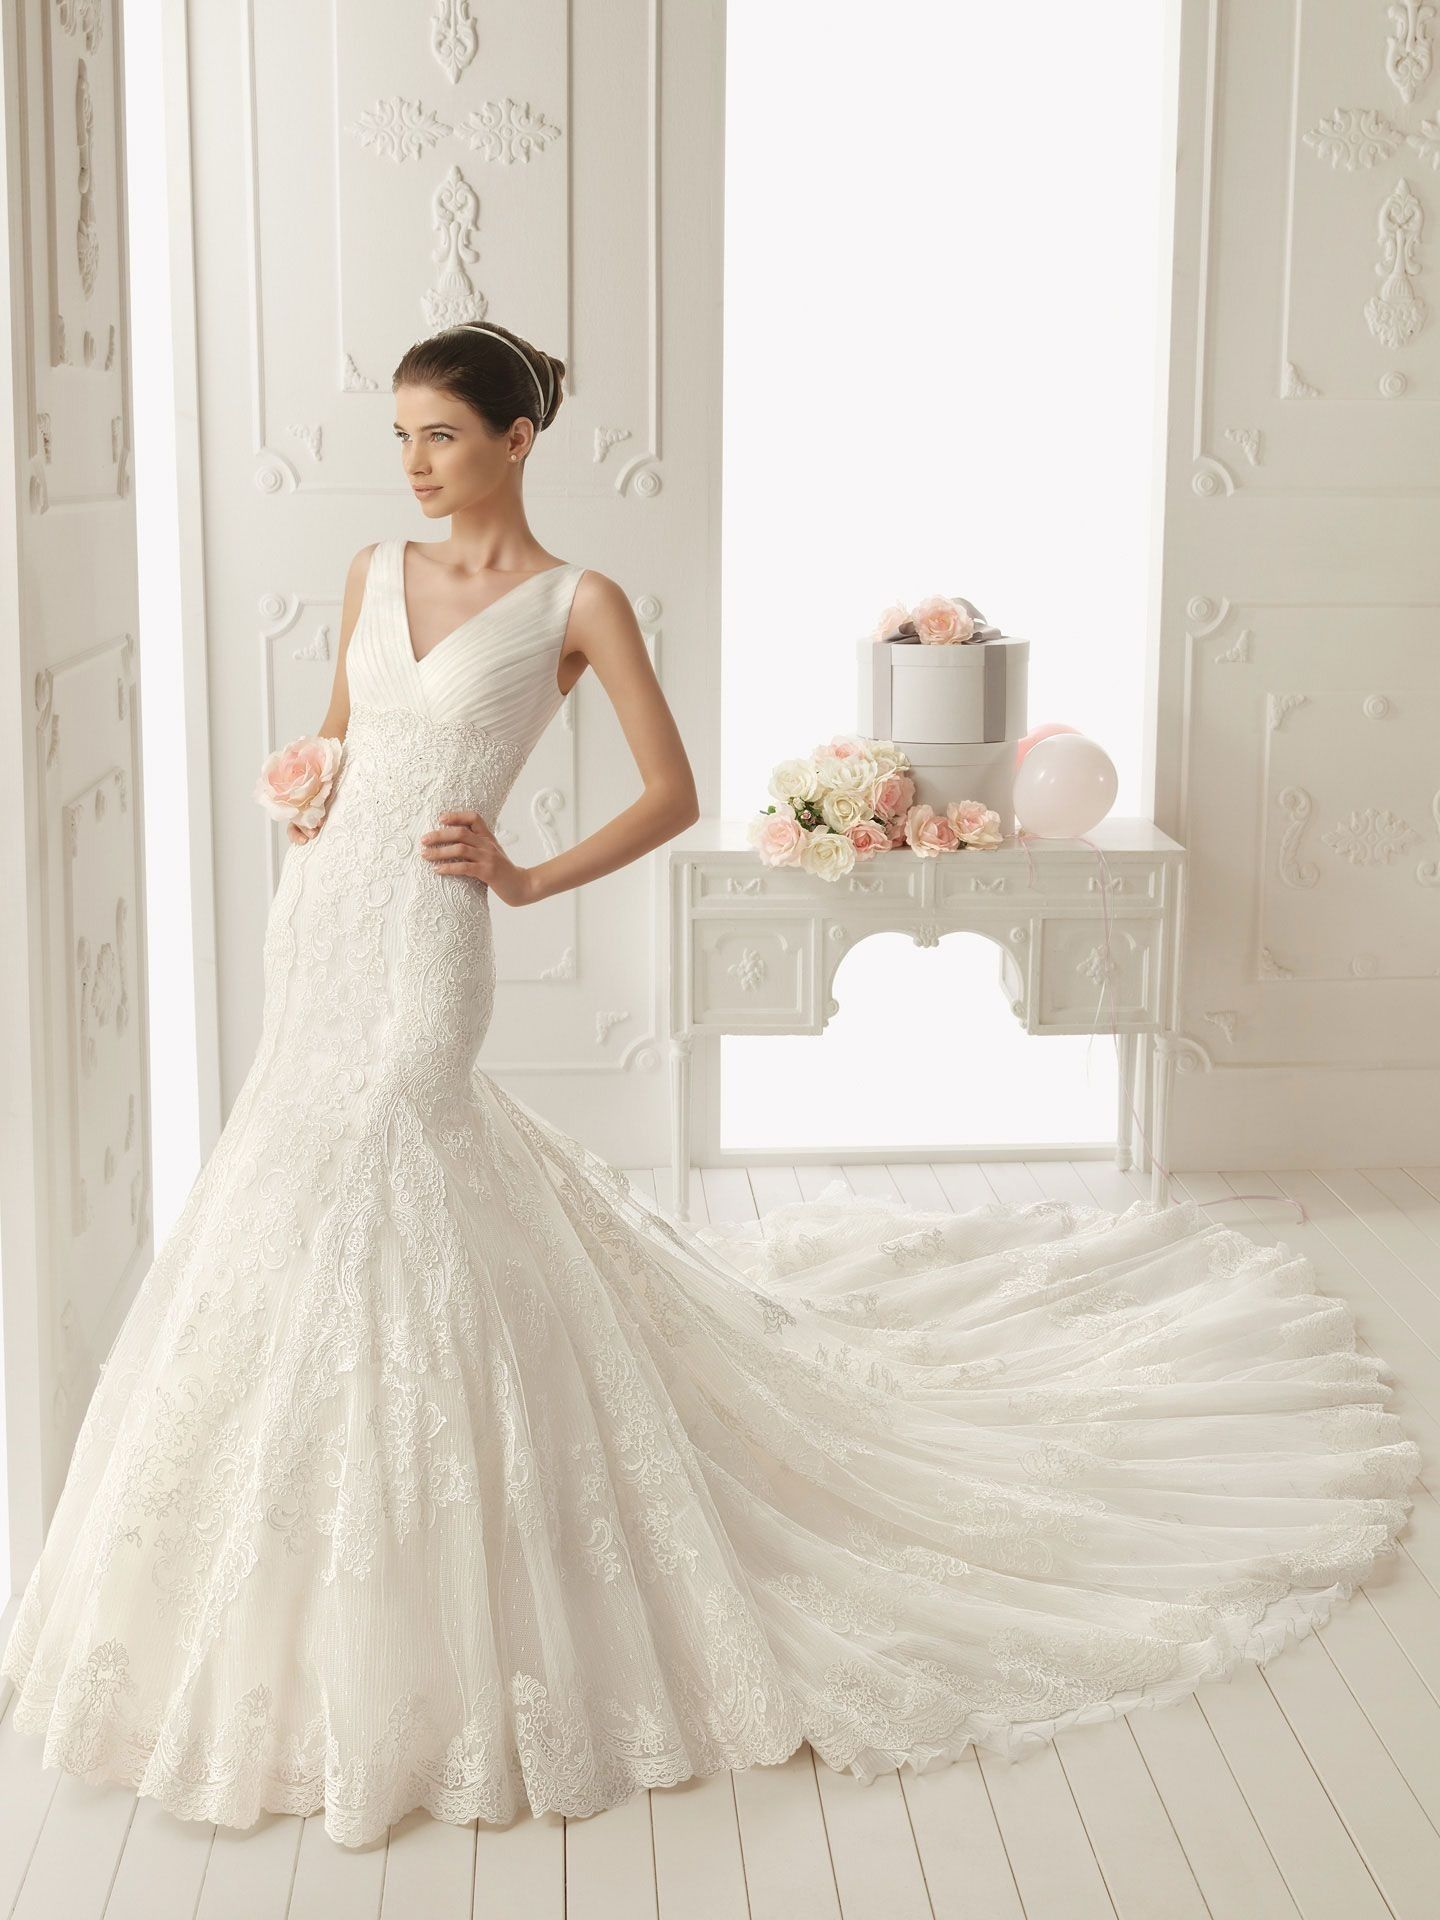 Form fitting white bridal dress wedding pinterest white bridal